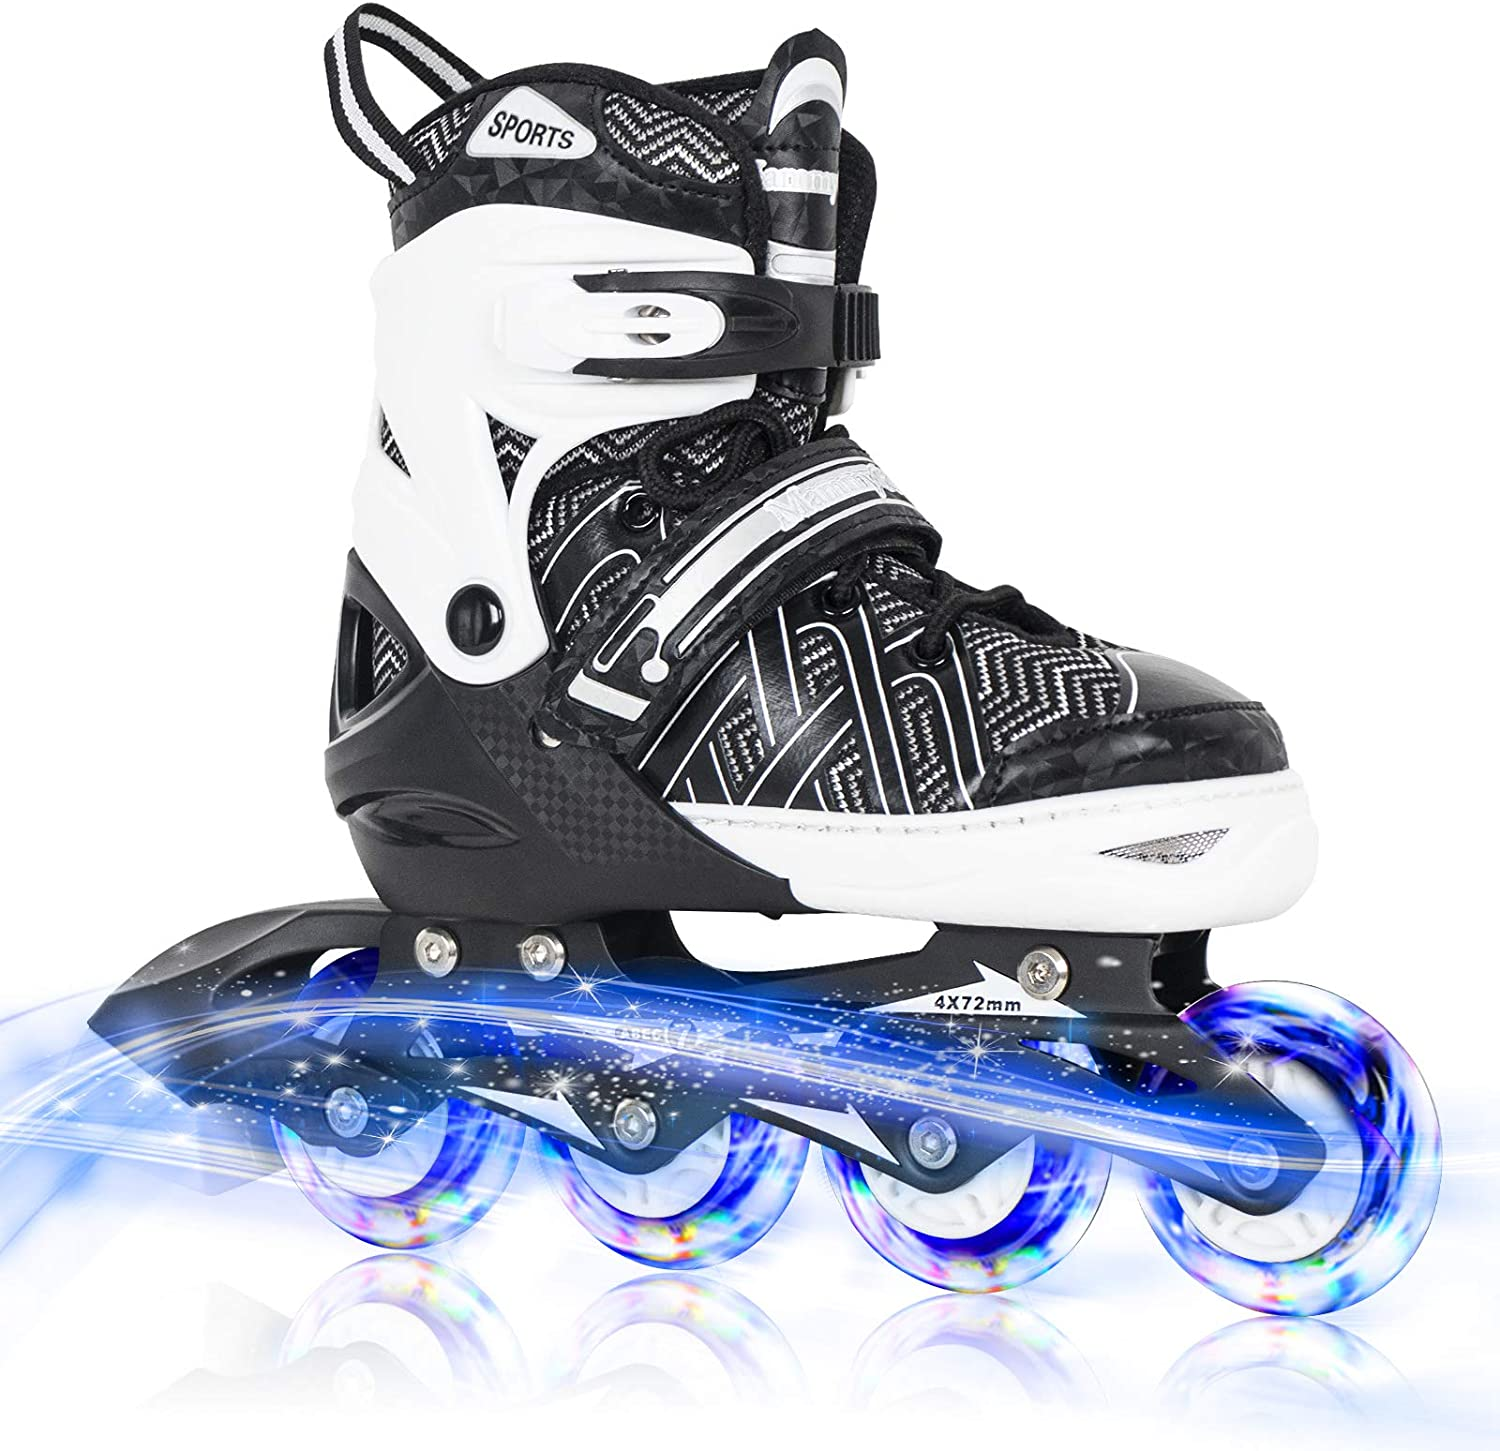 Nattork Adjustable Inline Skates for Kids Max Cash special price 74% OFF up Whe with Full Light